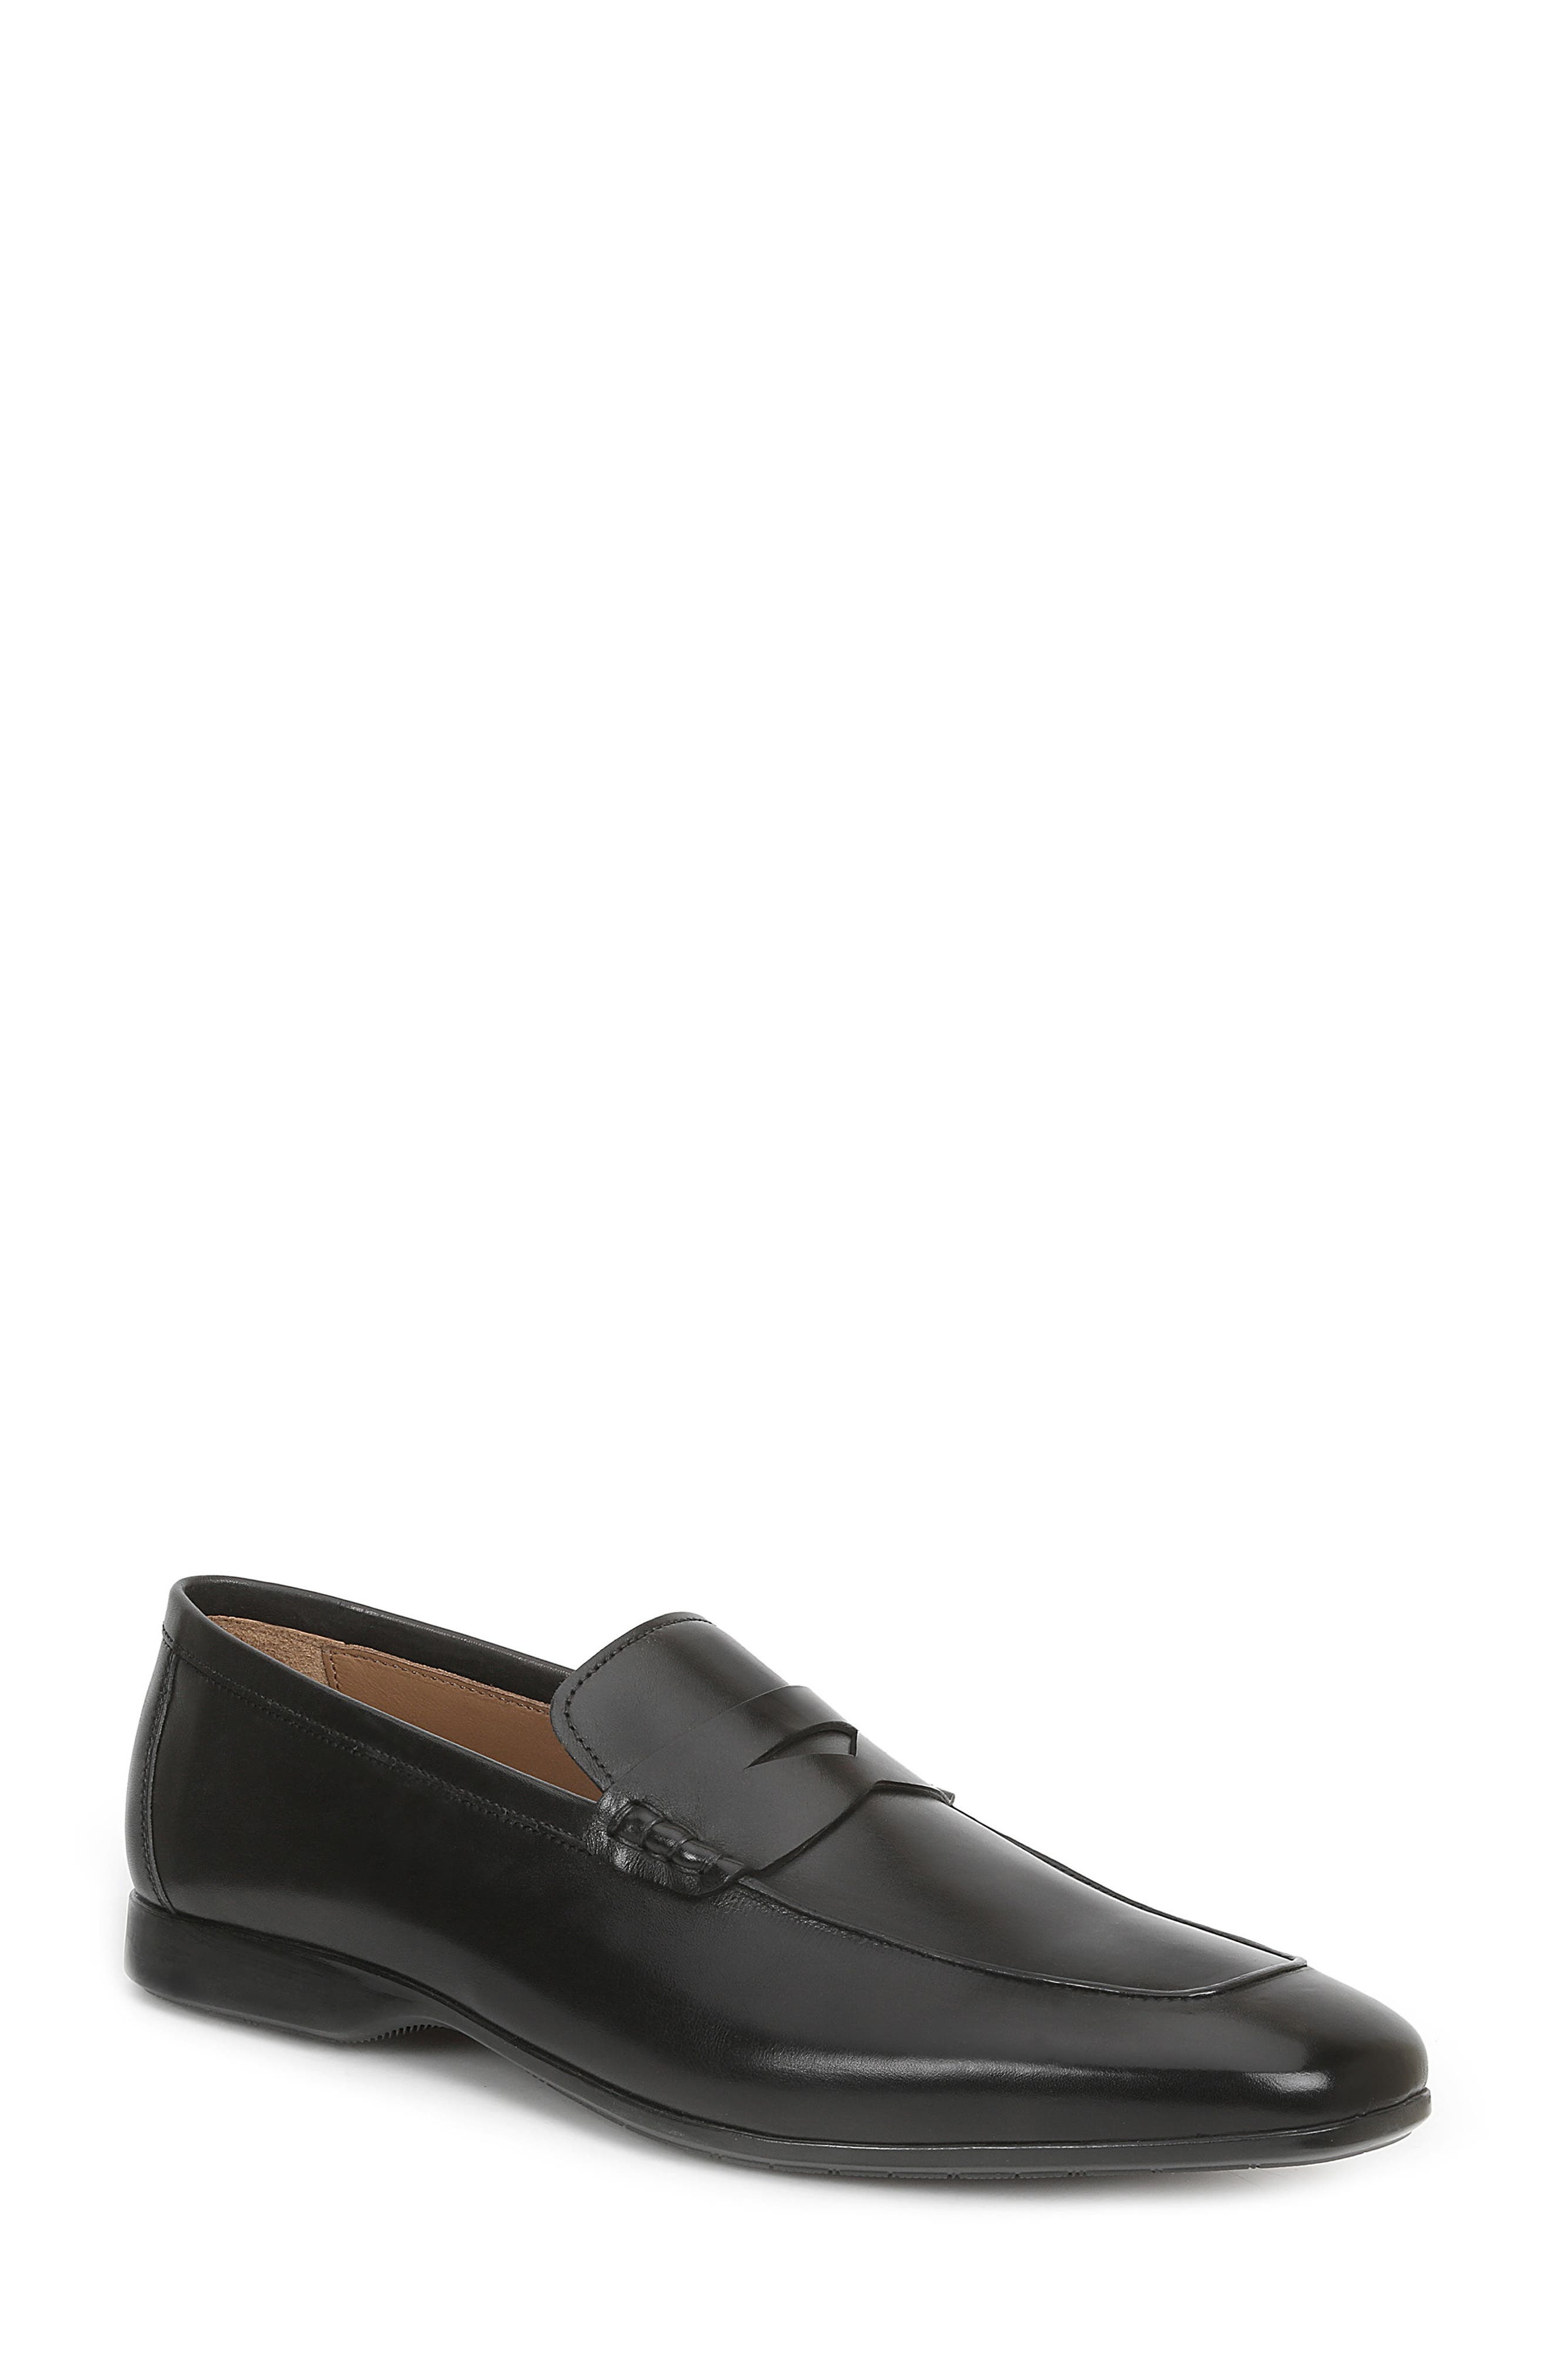 BRUNO MAGLI,                             Margot Penny Loafer,                             Main thumbnail 1, color,                             BLACK